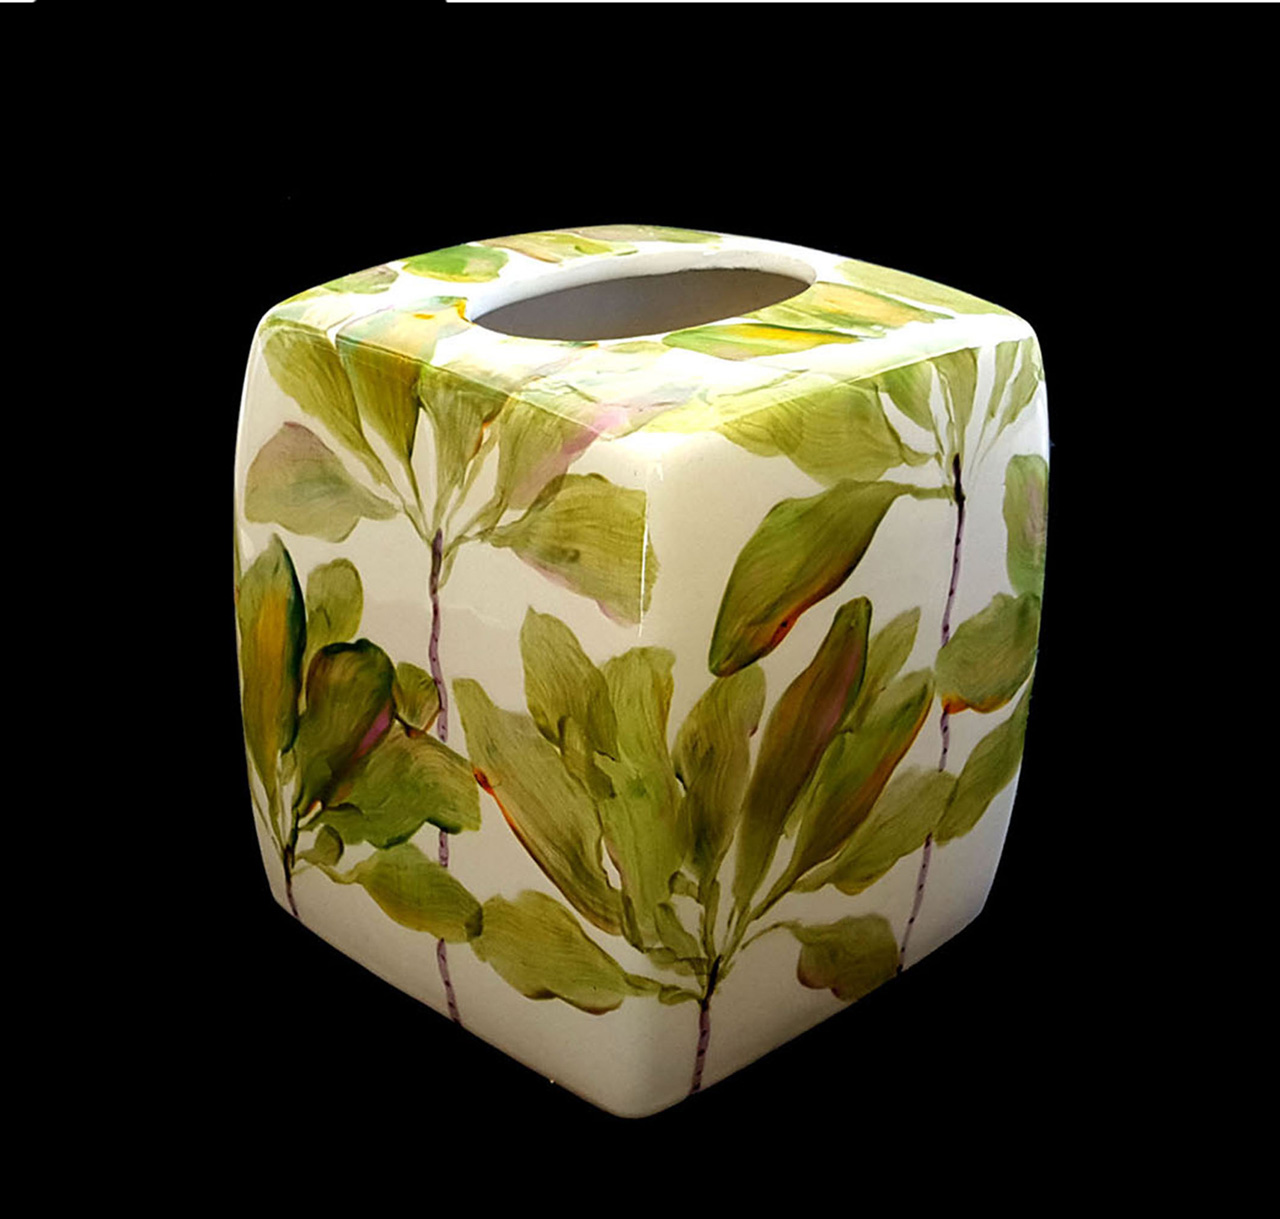 a ceramic tissue box holder with painted ti leaves